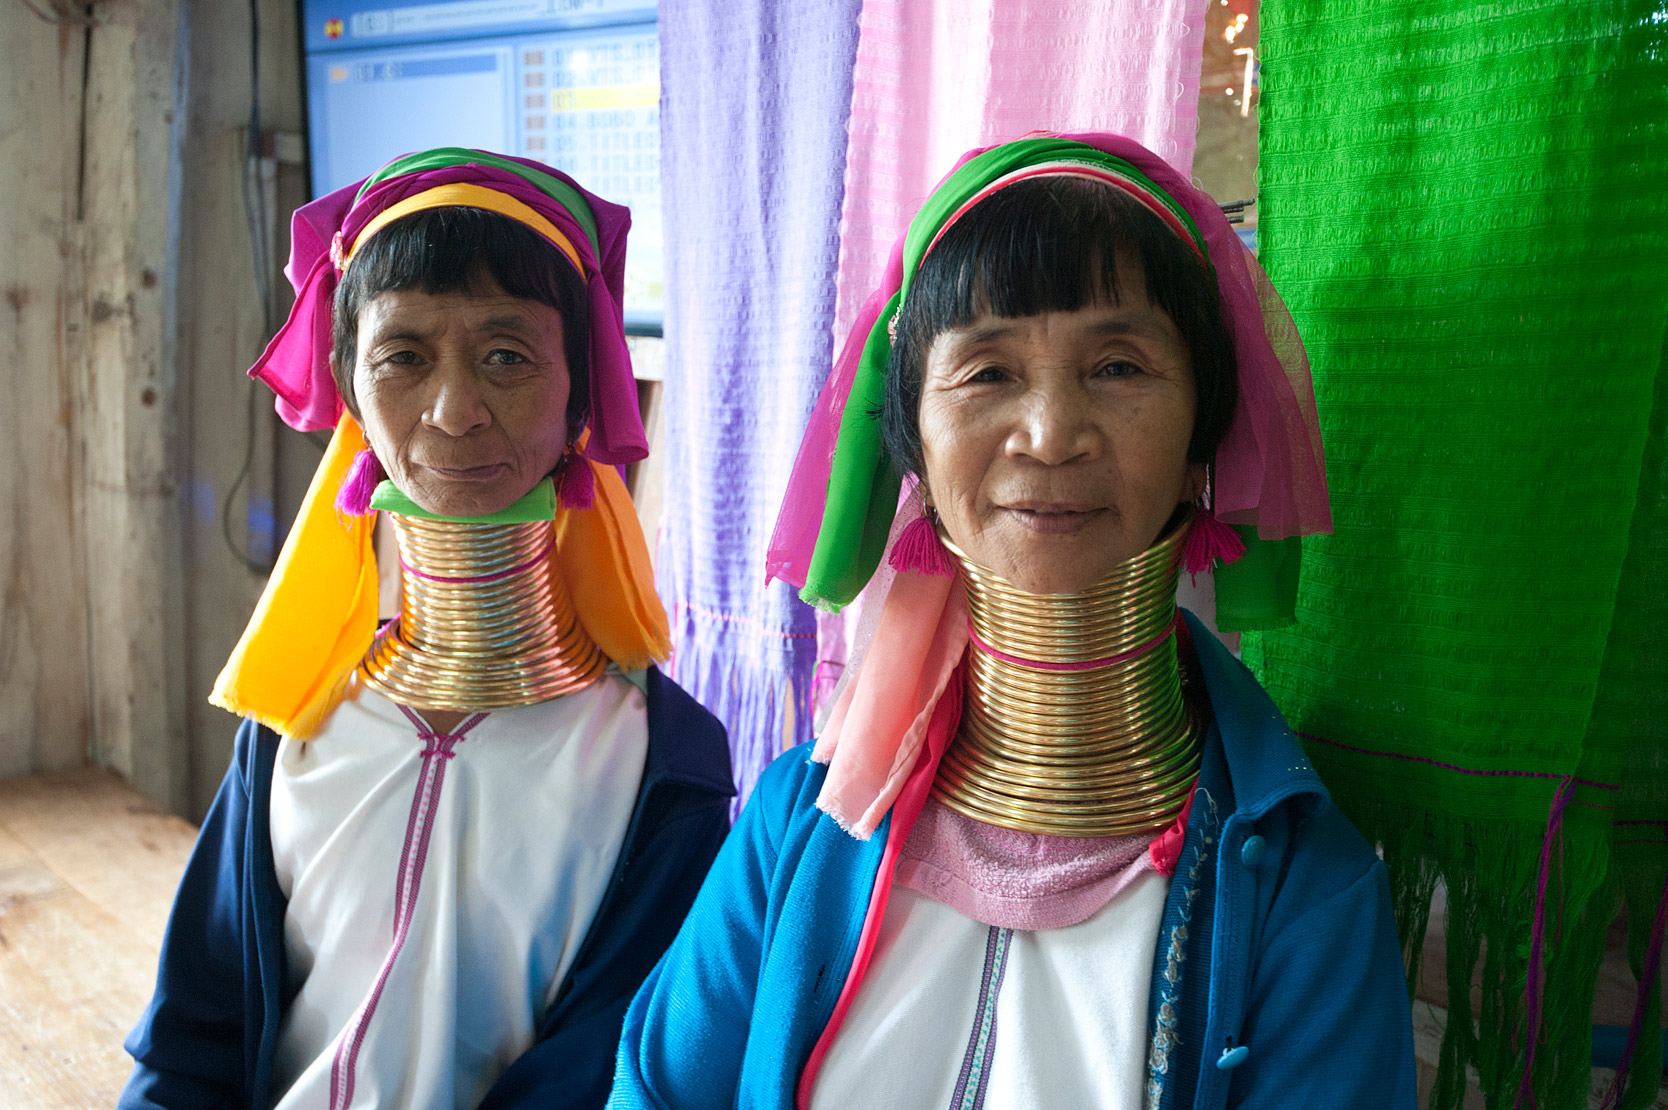 Paduang women, sisters from Ywama village, wearing traditional head cloths, brass neck rings, knee rings and metal bracelets, Inle Lake, Shan state.